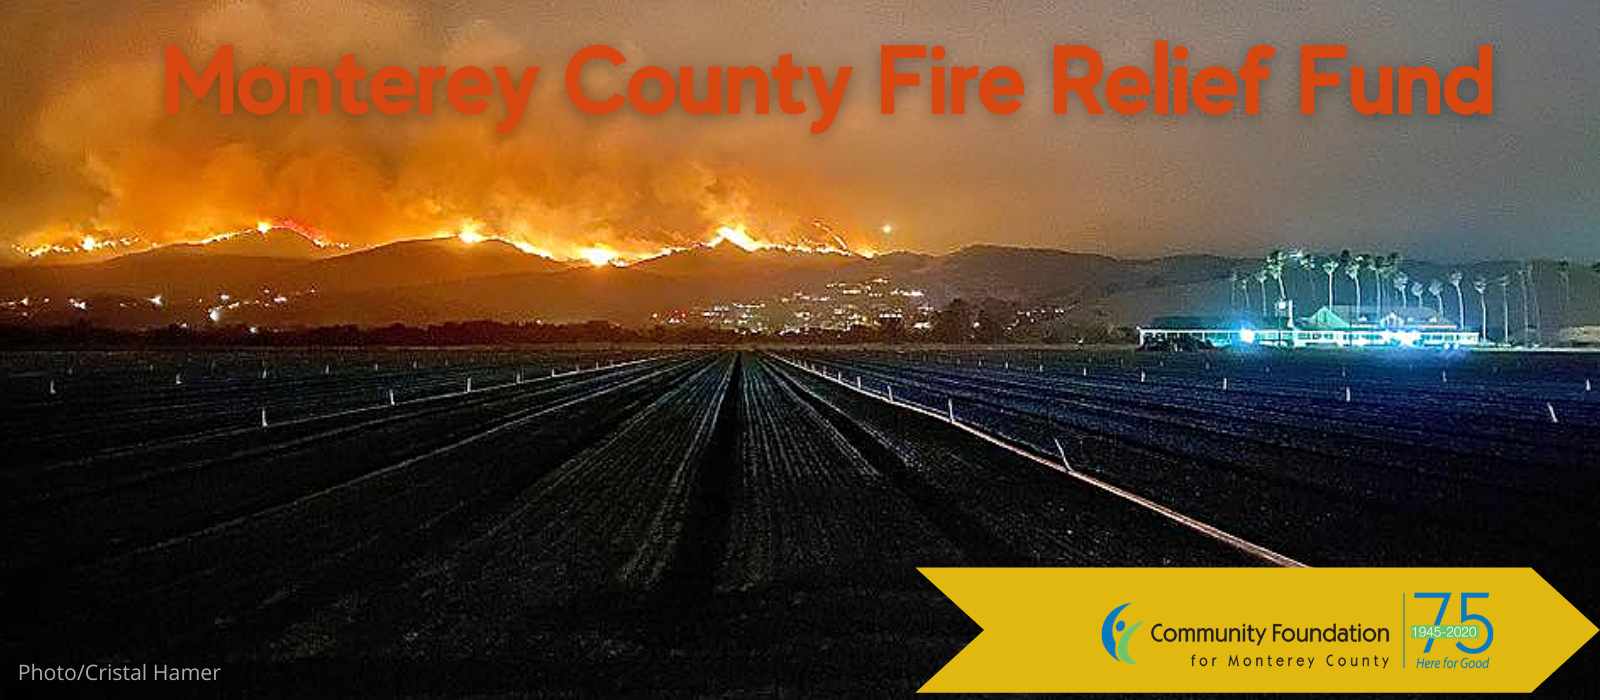 The Community Foundation for Monterey County has created the Monterey County Fire Relief Fund to assist communities affected by current and future fires including the #RiverFire #CarmelFire and #DolanFire.